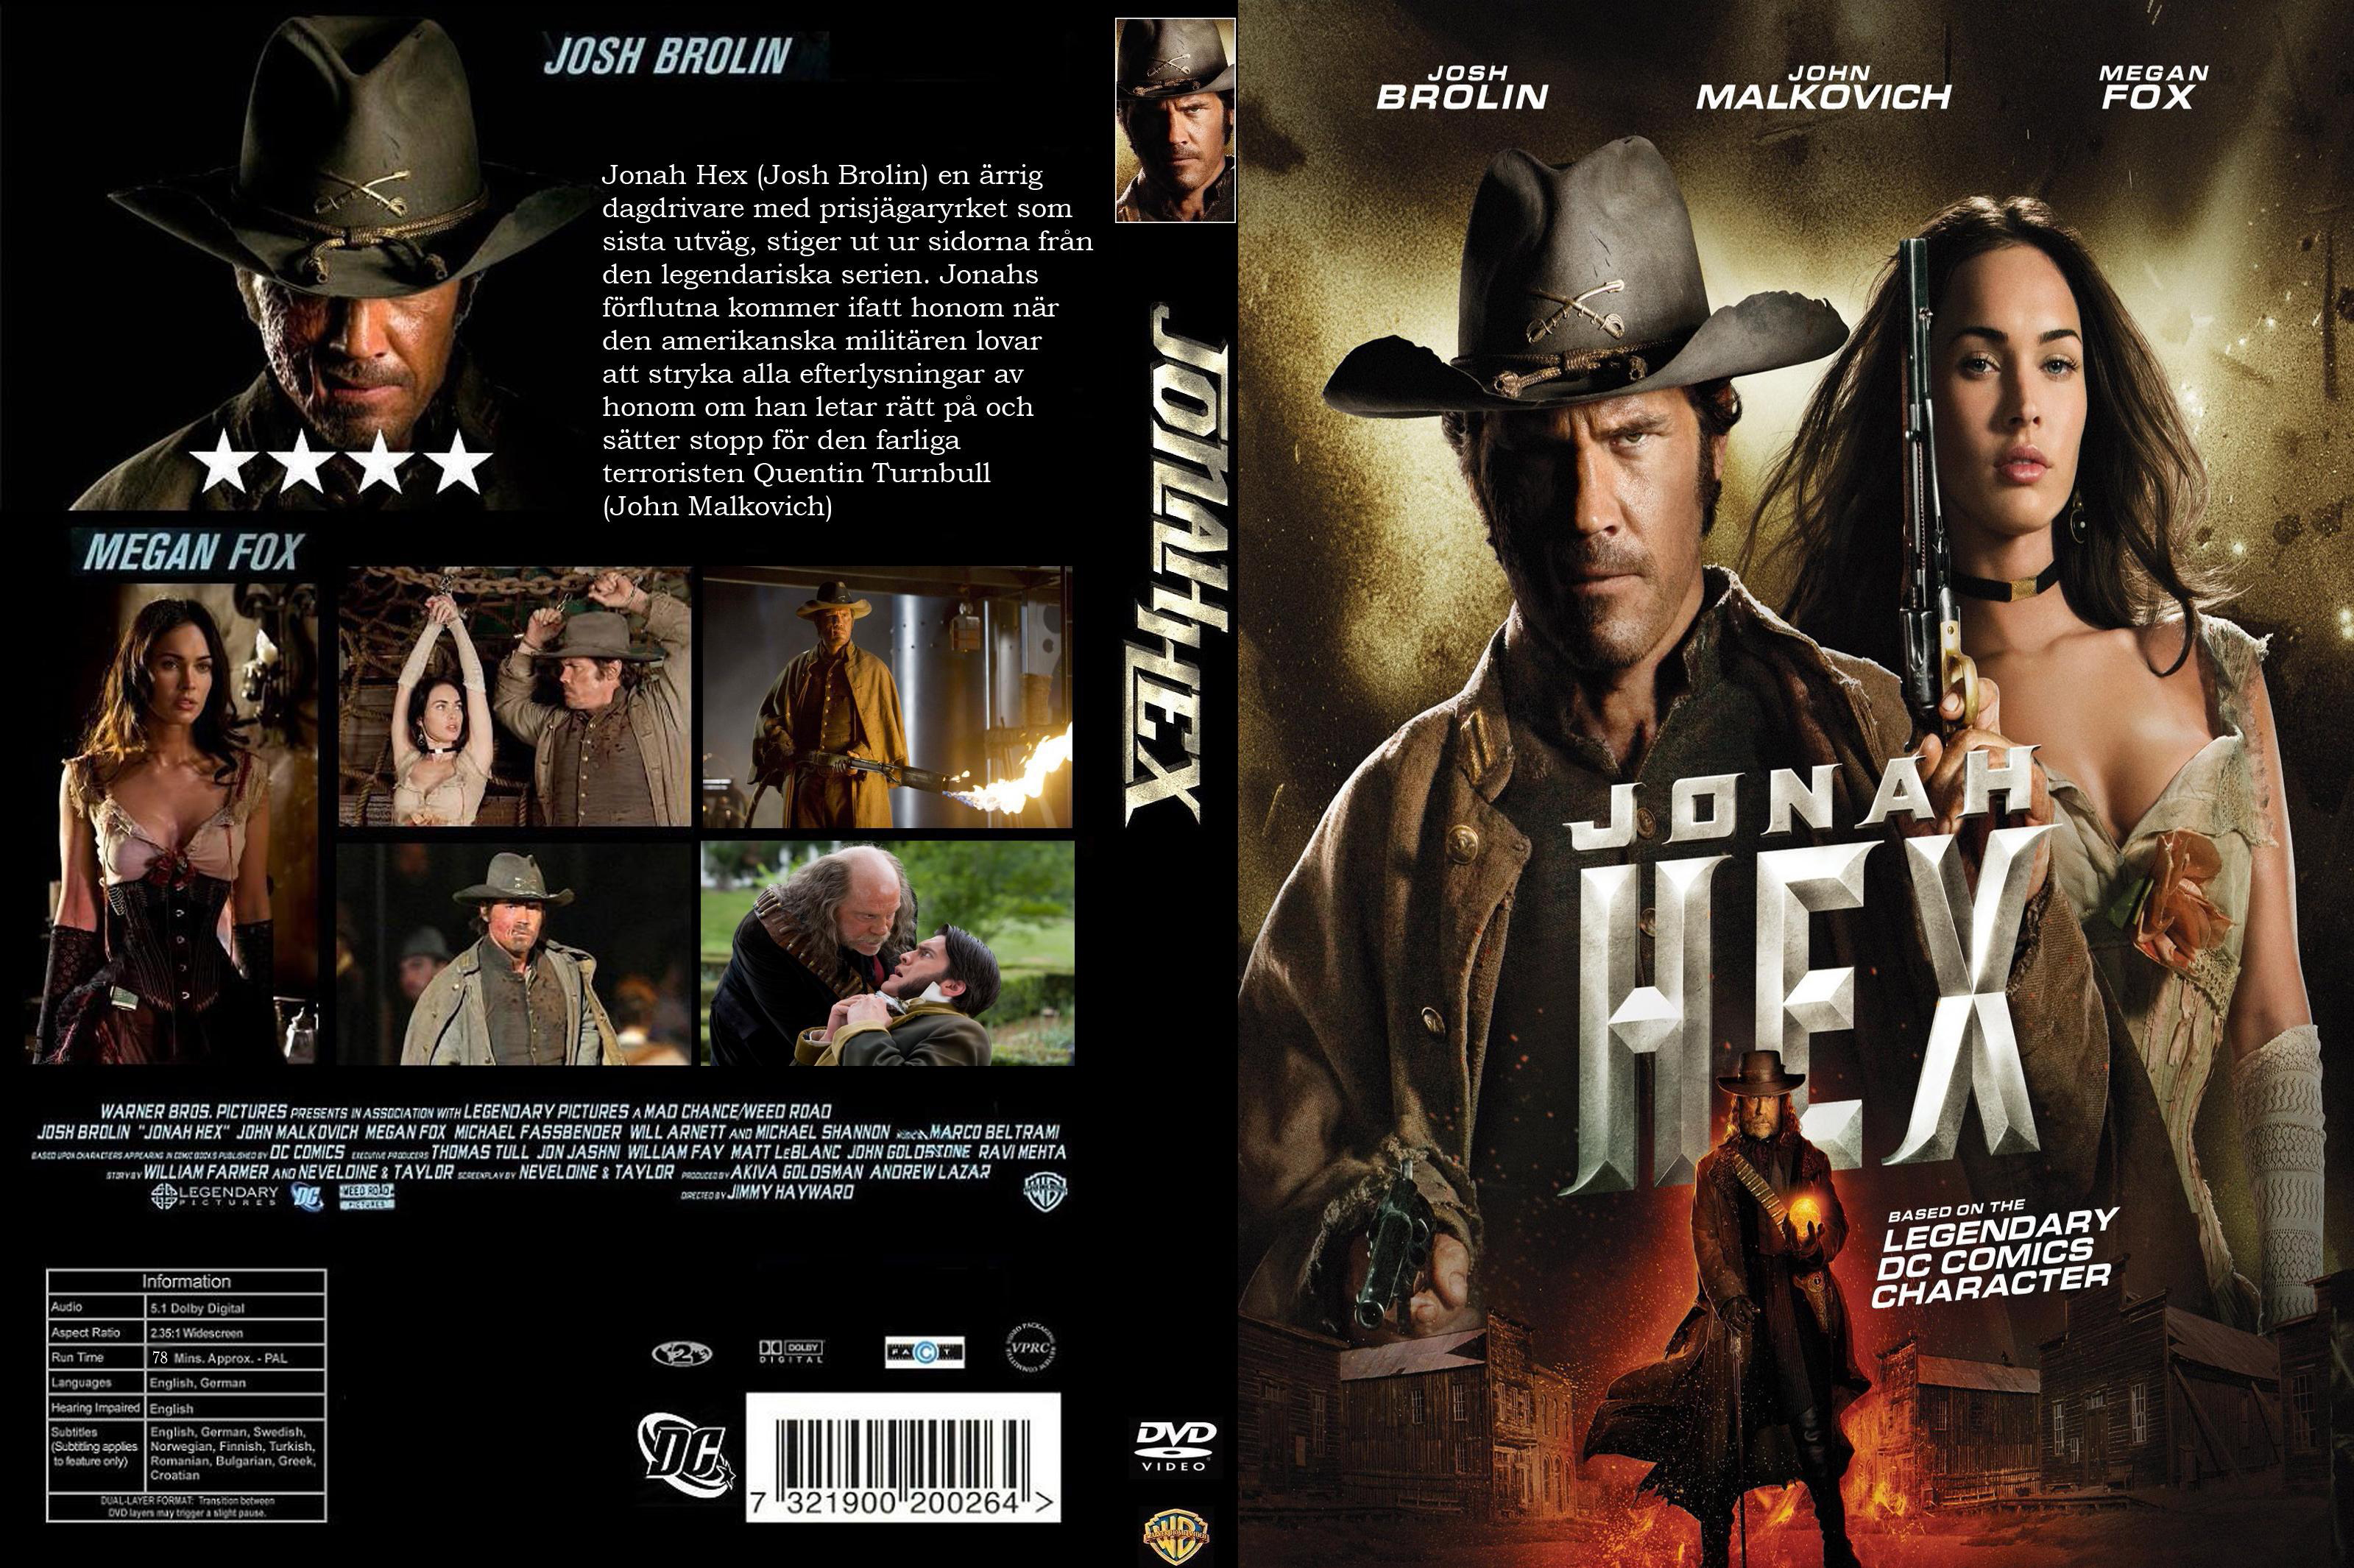 jonah hex movie download in english